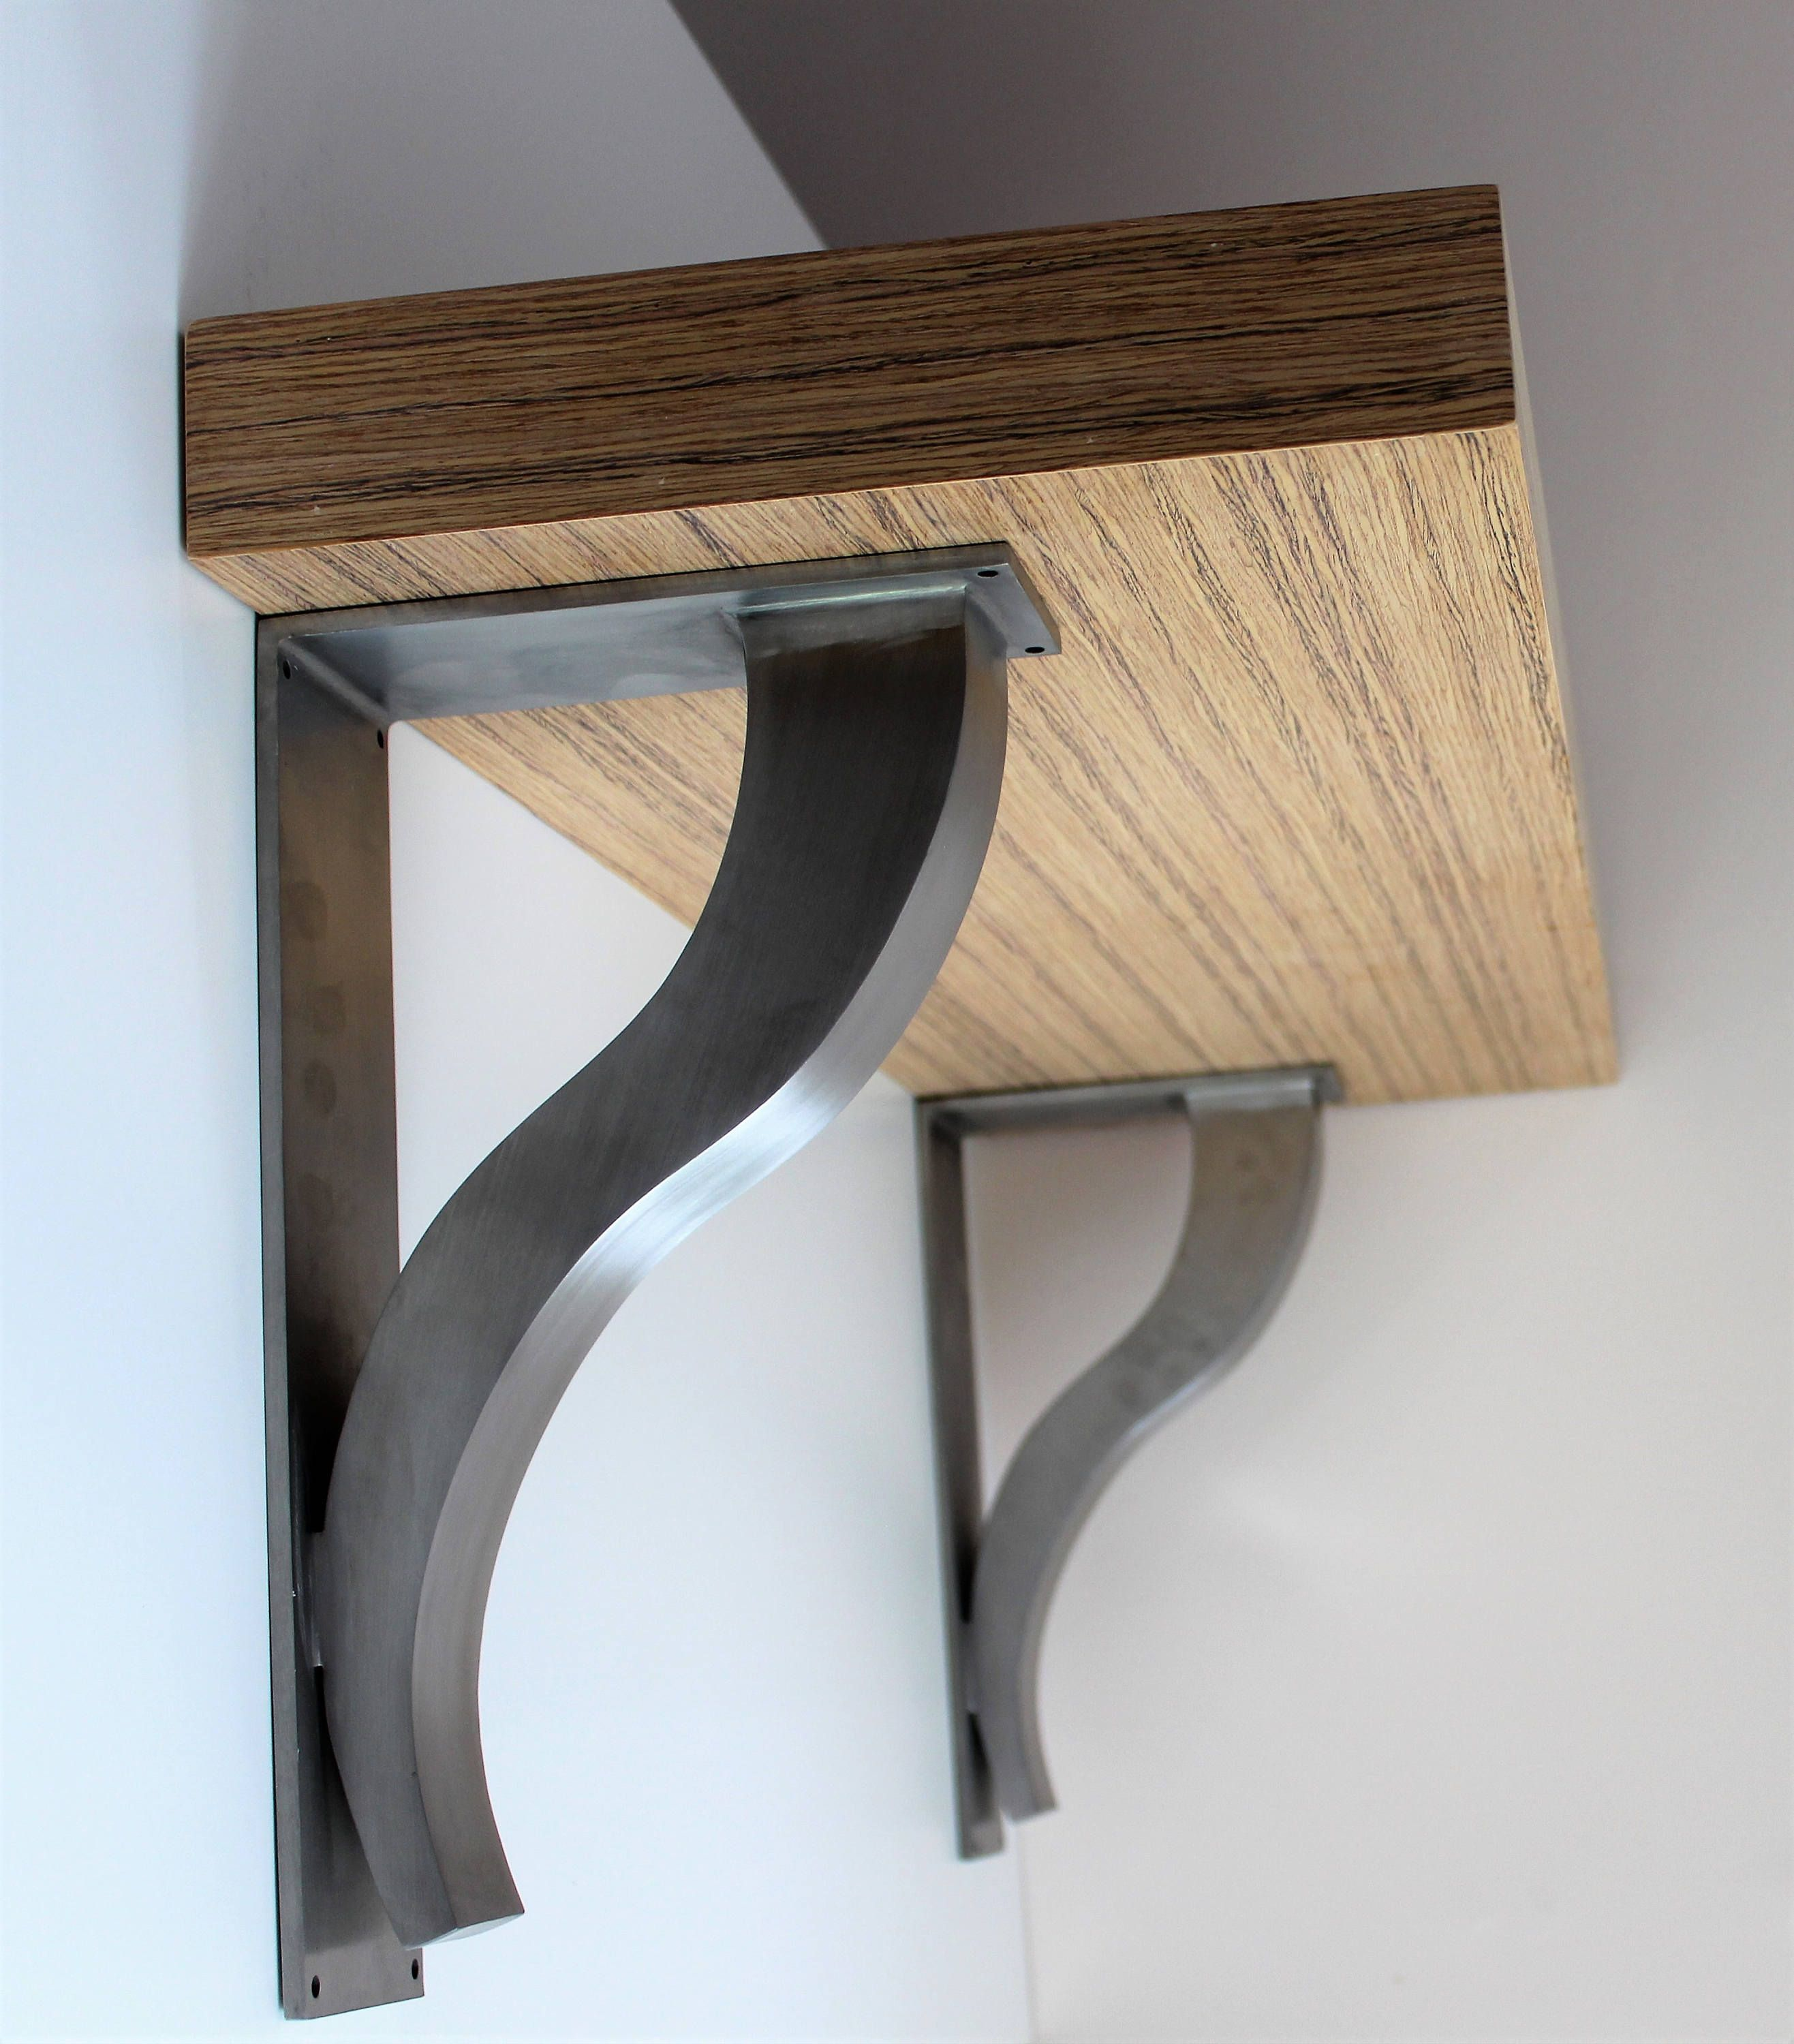 Floating Countertop Supports Stainless Steel Countertop Support Brackets Architectural